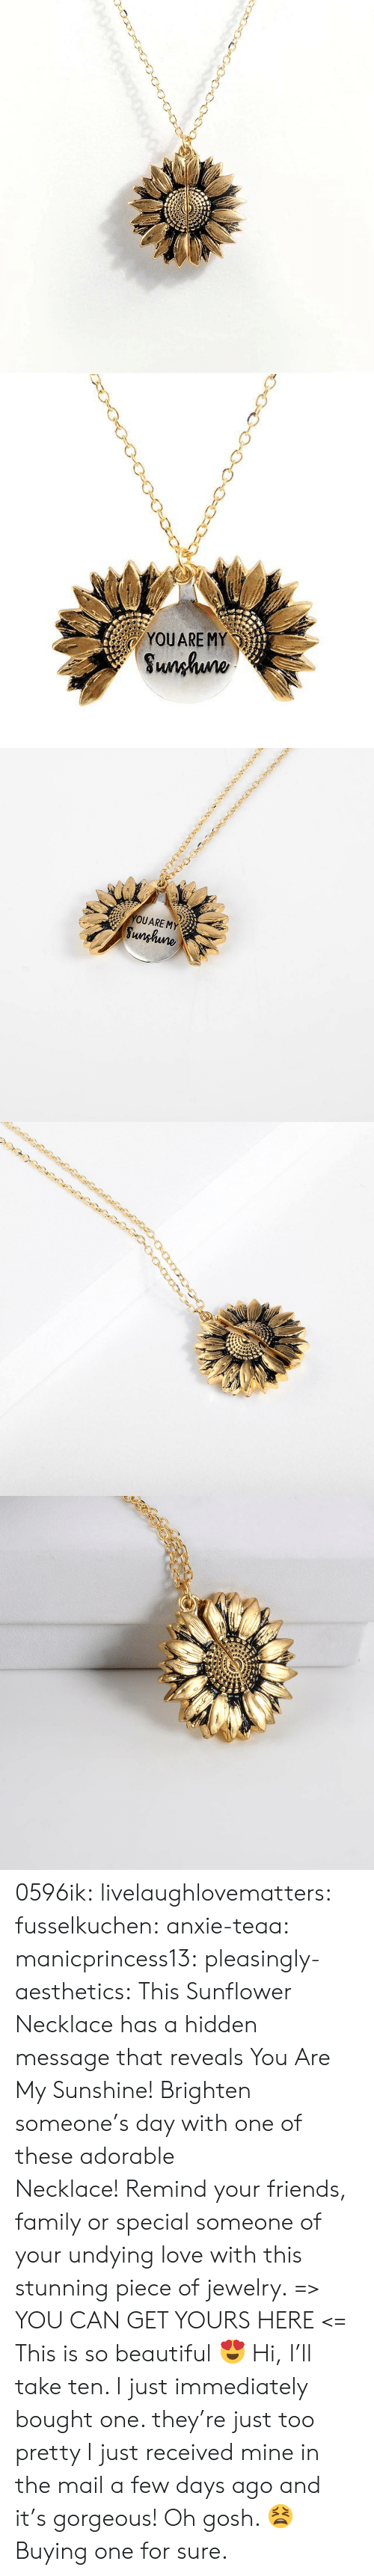 Beautiful, Family, and Friends: YOUARE MY  Sunhuno   YOUARE MY  Sunghune 0596ik:  livelaughlovematters:  fusselkuchen: anxie-teaa:   manicprincess13:   pleasingly-aesthetics:  This Sunflower Necklace has a hidden message that reveals You Are My Sunshine! Brighten someone's day with one of these adorable Necklace!Remind your friends, family or special someone of your undying love with this stunning piece of jewelry. => YOU CAN GET YOURS HERE <=   This is so beautiful 😍    Hi, I'll take ten.    I just immediately bought one. they're just too pretty   I just received mine in the mail a few days ago and it's gorgeous!  Oh gosh. 😫 Buying one for sure.